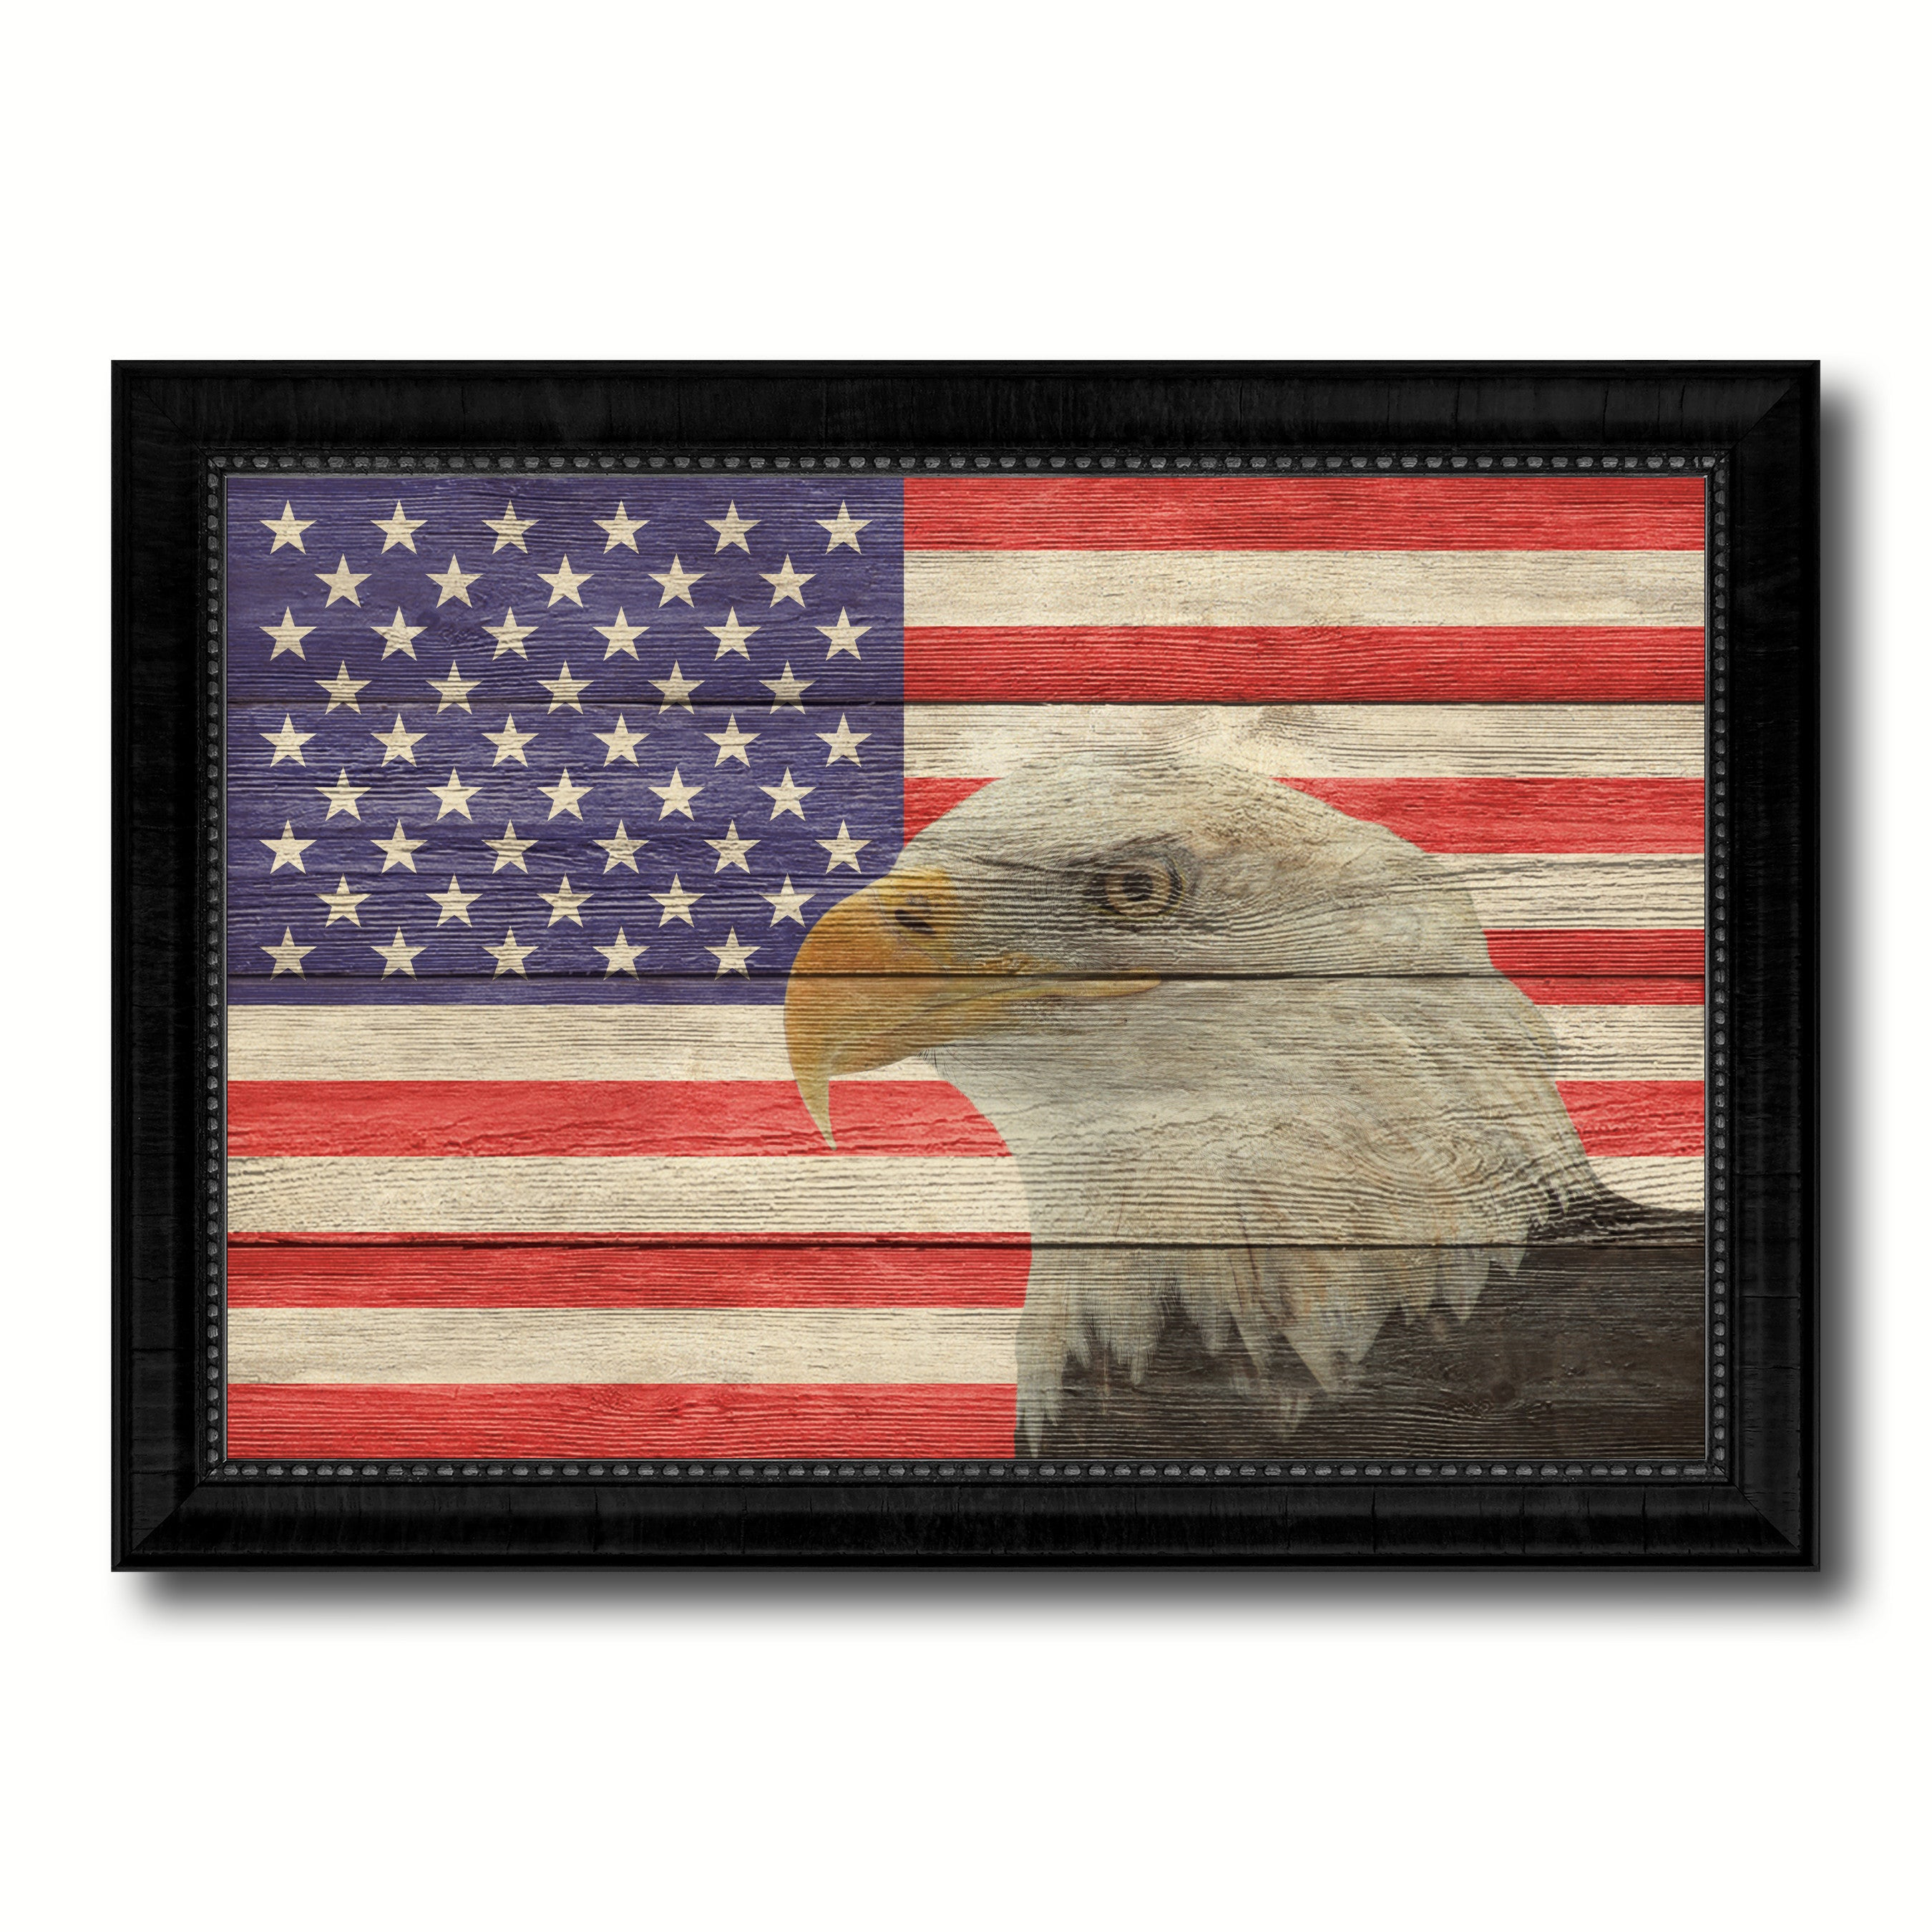 American Eagle Home Decor Office Wall Art Decoration Bedroom Livingroom Housewarming Gift Ideas SpotColorArt